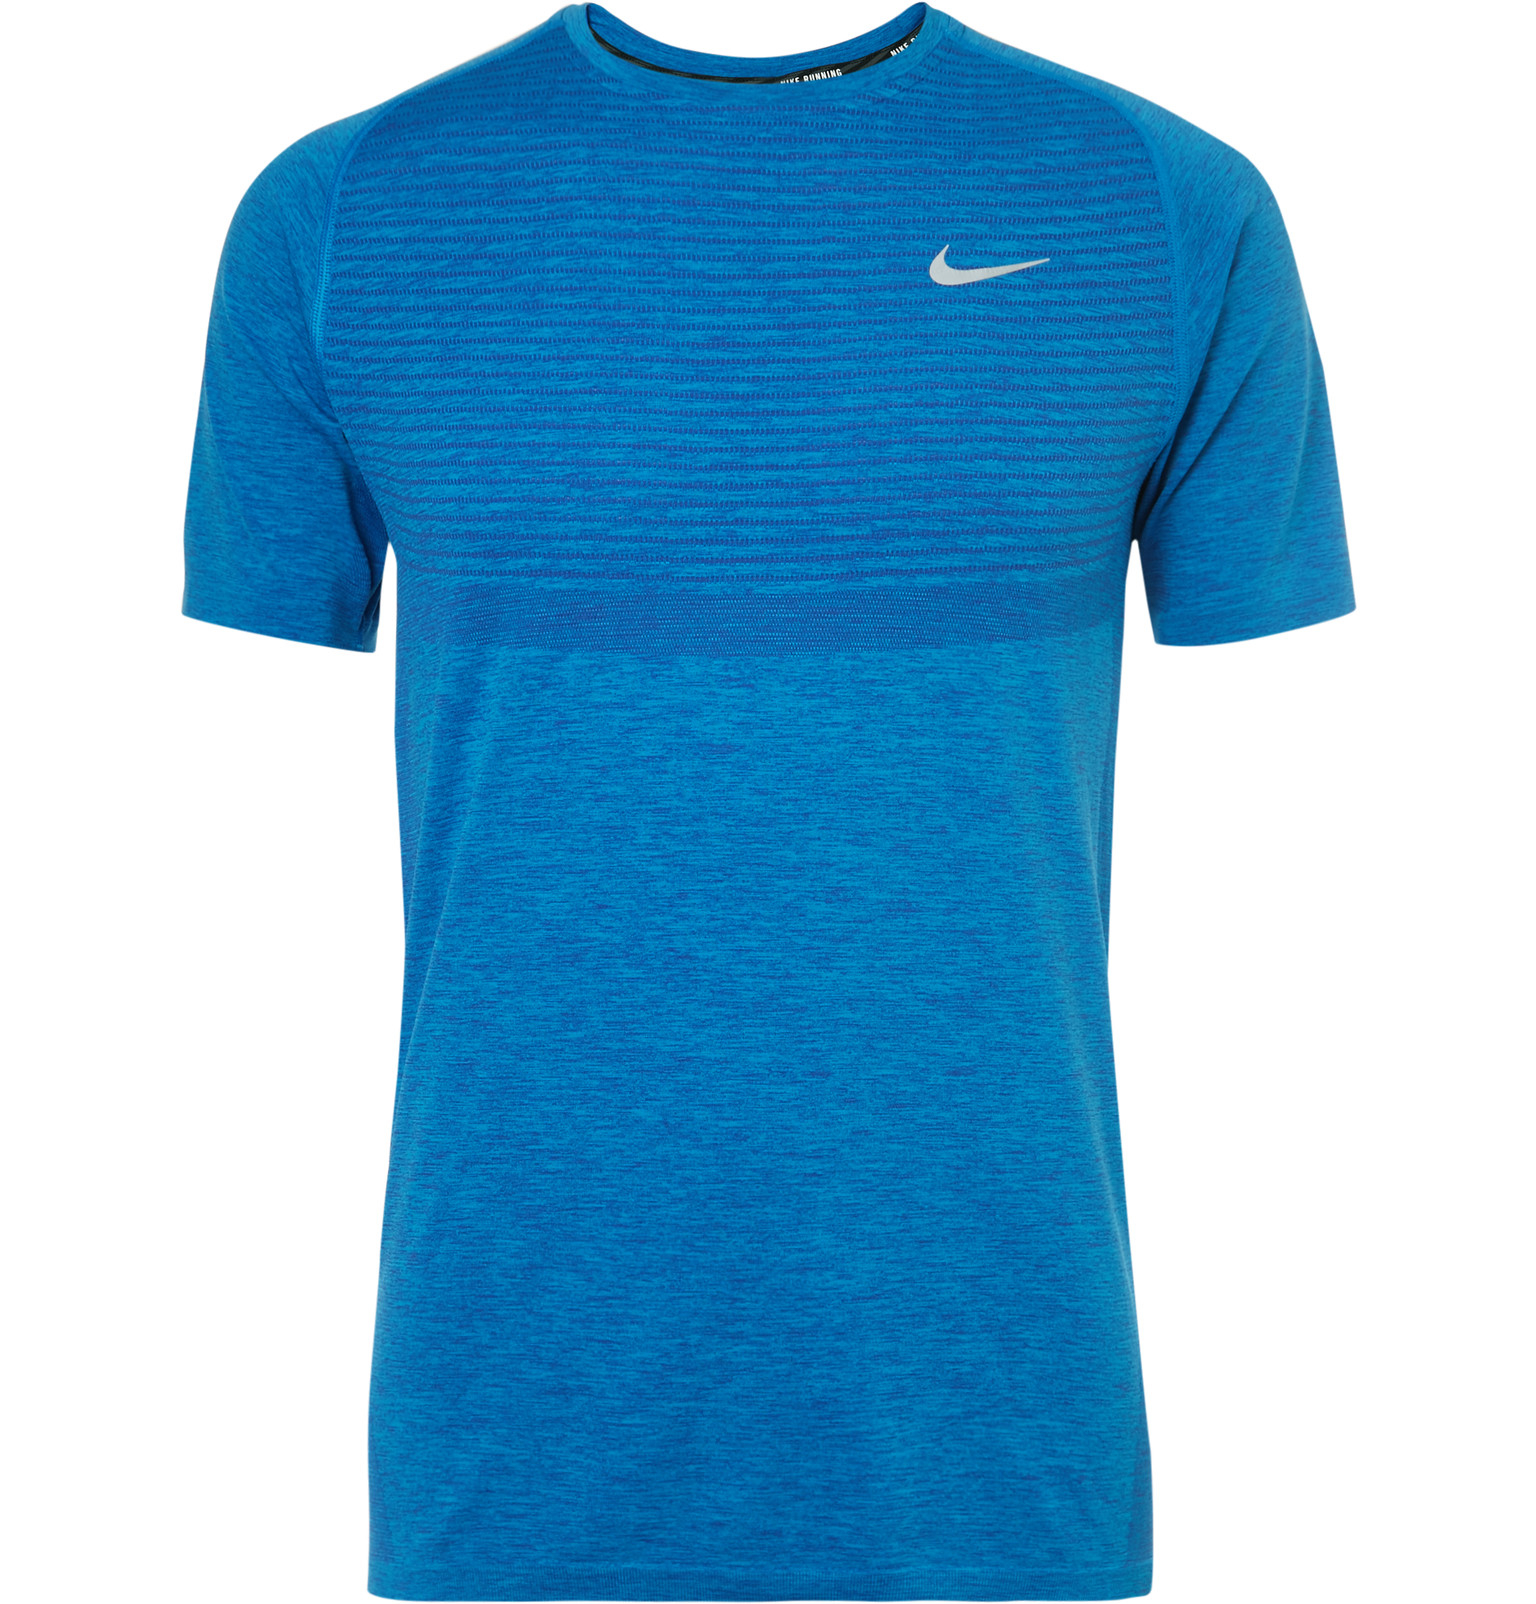 Nike dri fit knit running t shirt in blue for men lyst for Running dri fit shirts